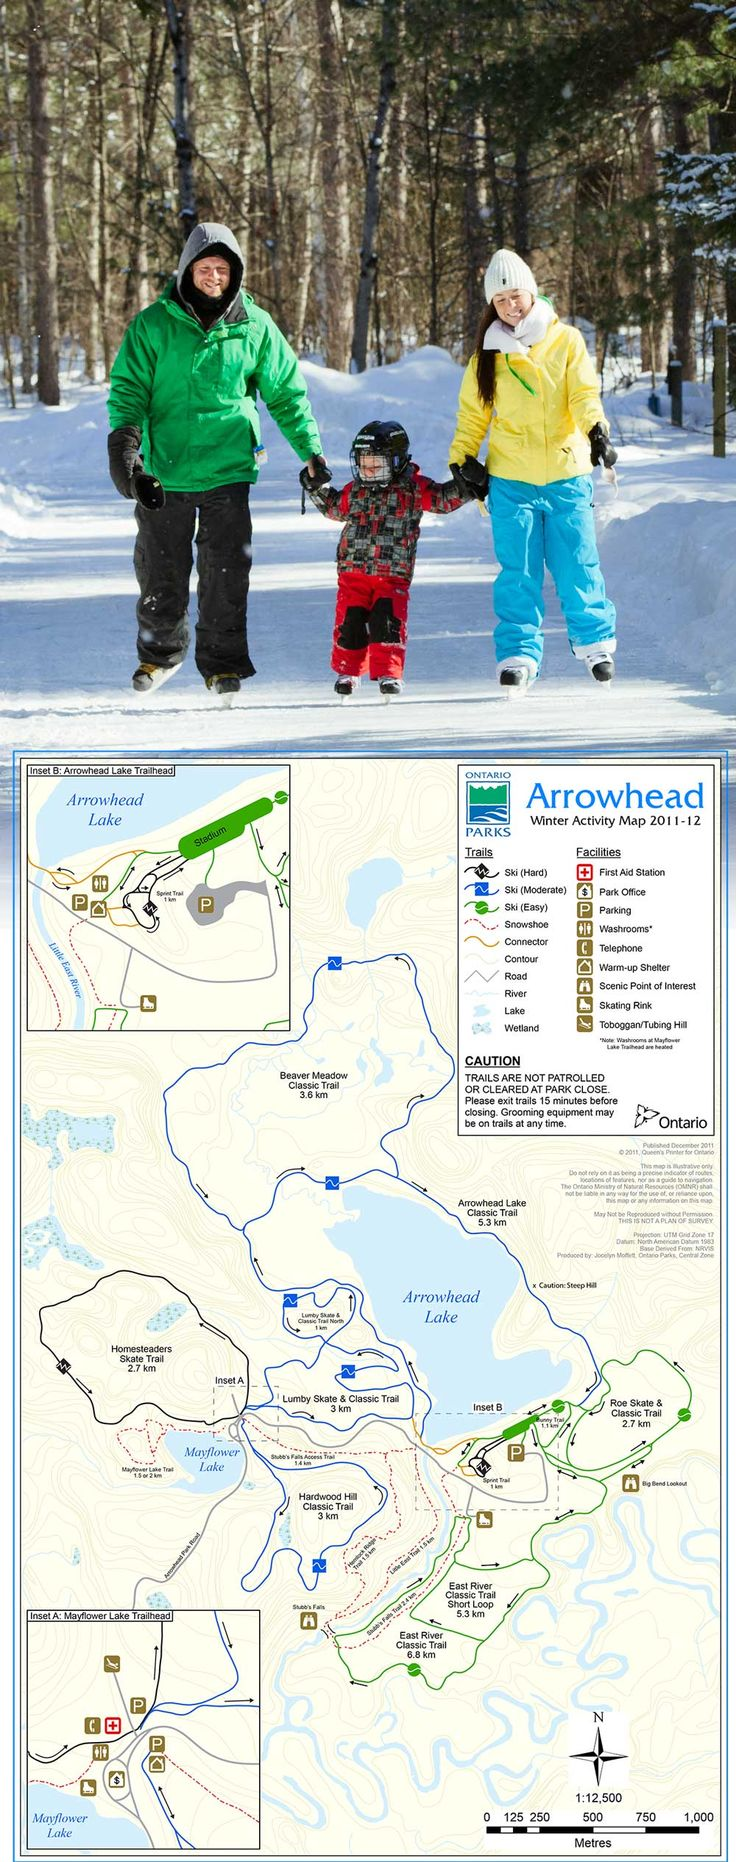 In the winter, Arrowhead grooms and maintains more than 33 km of cross-country ski trails that are designed for classic skiing or skate skiing.  Each trail is rated for difficulty and ranges from beginner to expert.  The park offers a variety of hiking/snowshoeing trails as well as a skating rink and skating trail. There are two warm-up shelters and an open fire pit at the top of the tubing hill!  http://www.ontarioparks.com/park/arrowhead